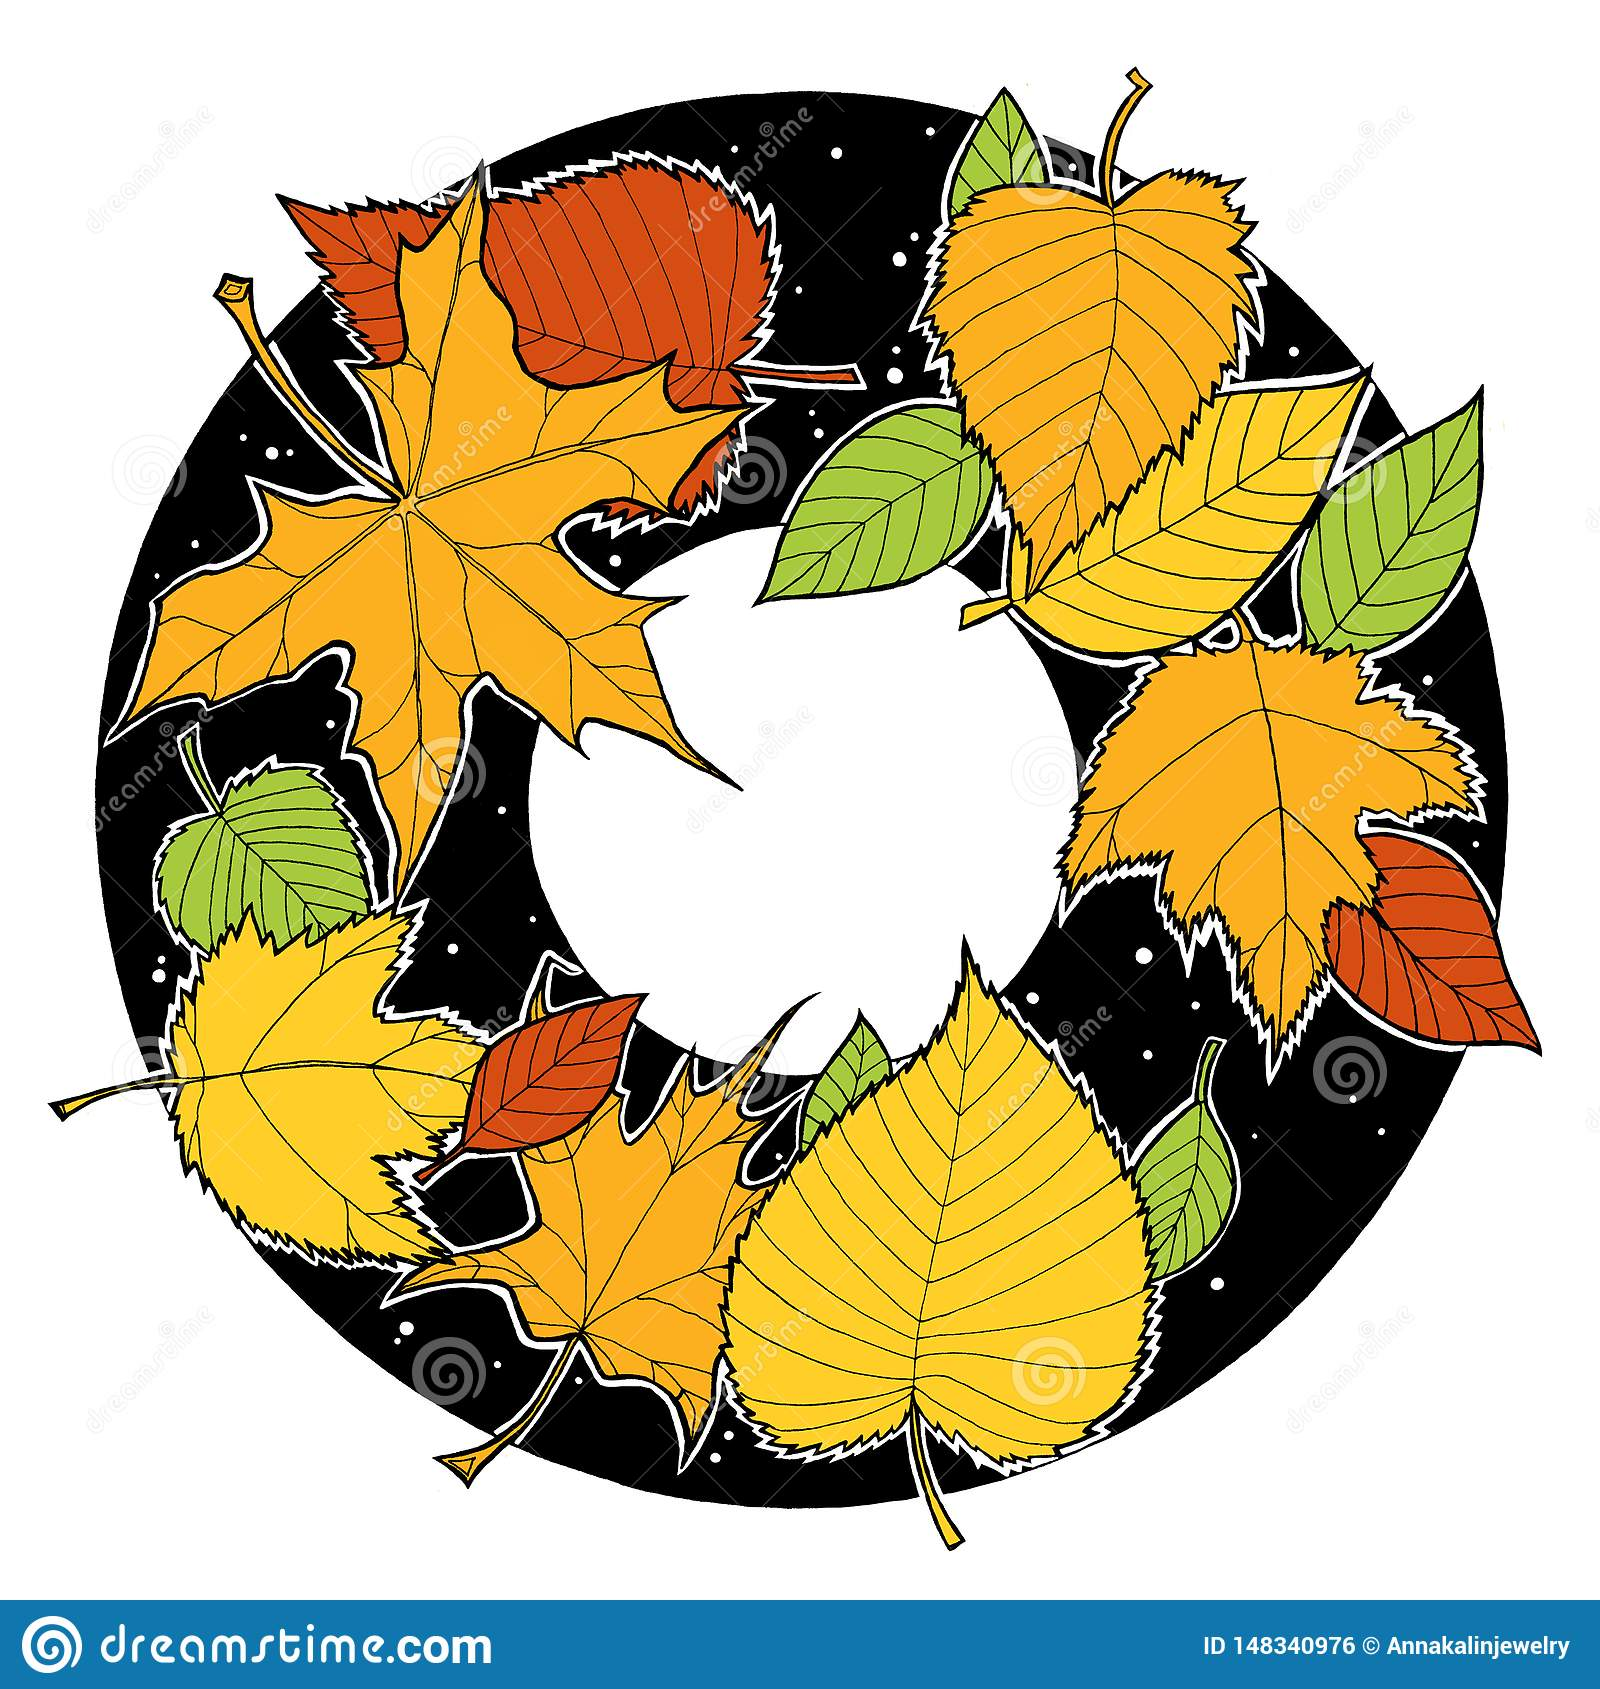 Ink drawing autumn foliage round frame, maple and birch leaves, green, orange, yellow